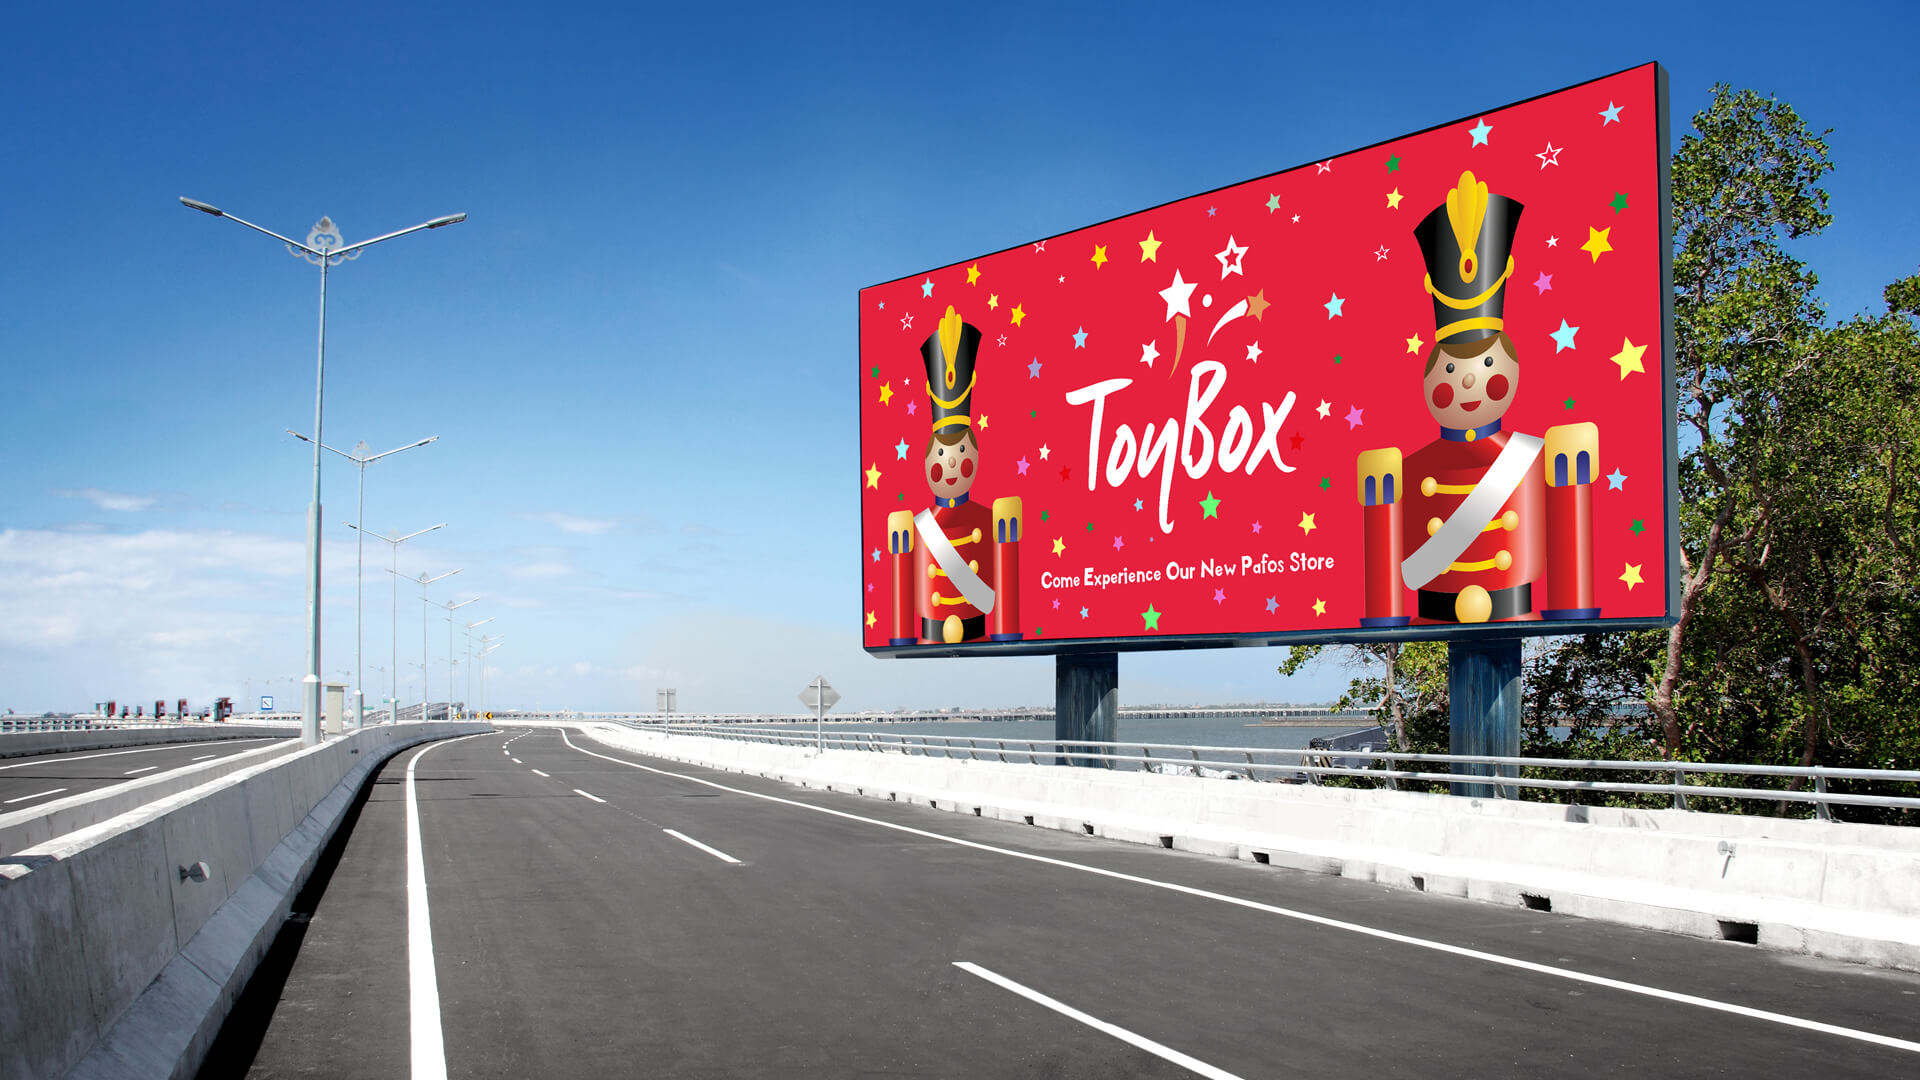 ToyBox Outdoor Advertising